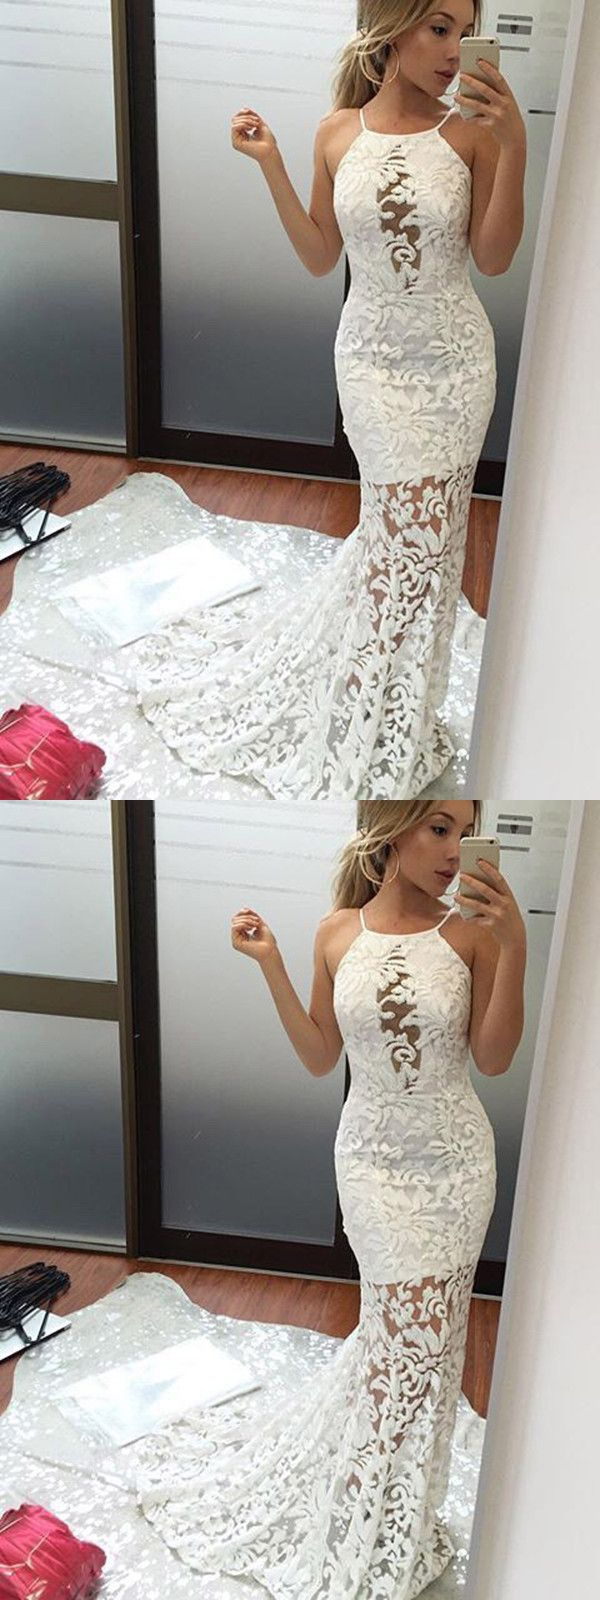 Chic mermaid prom dress lace unique red prom dress vb prom